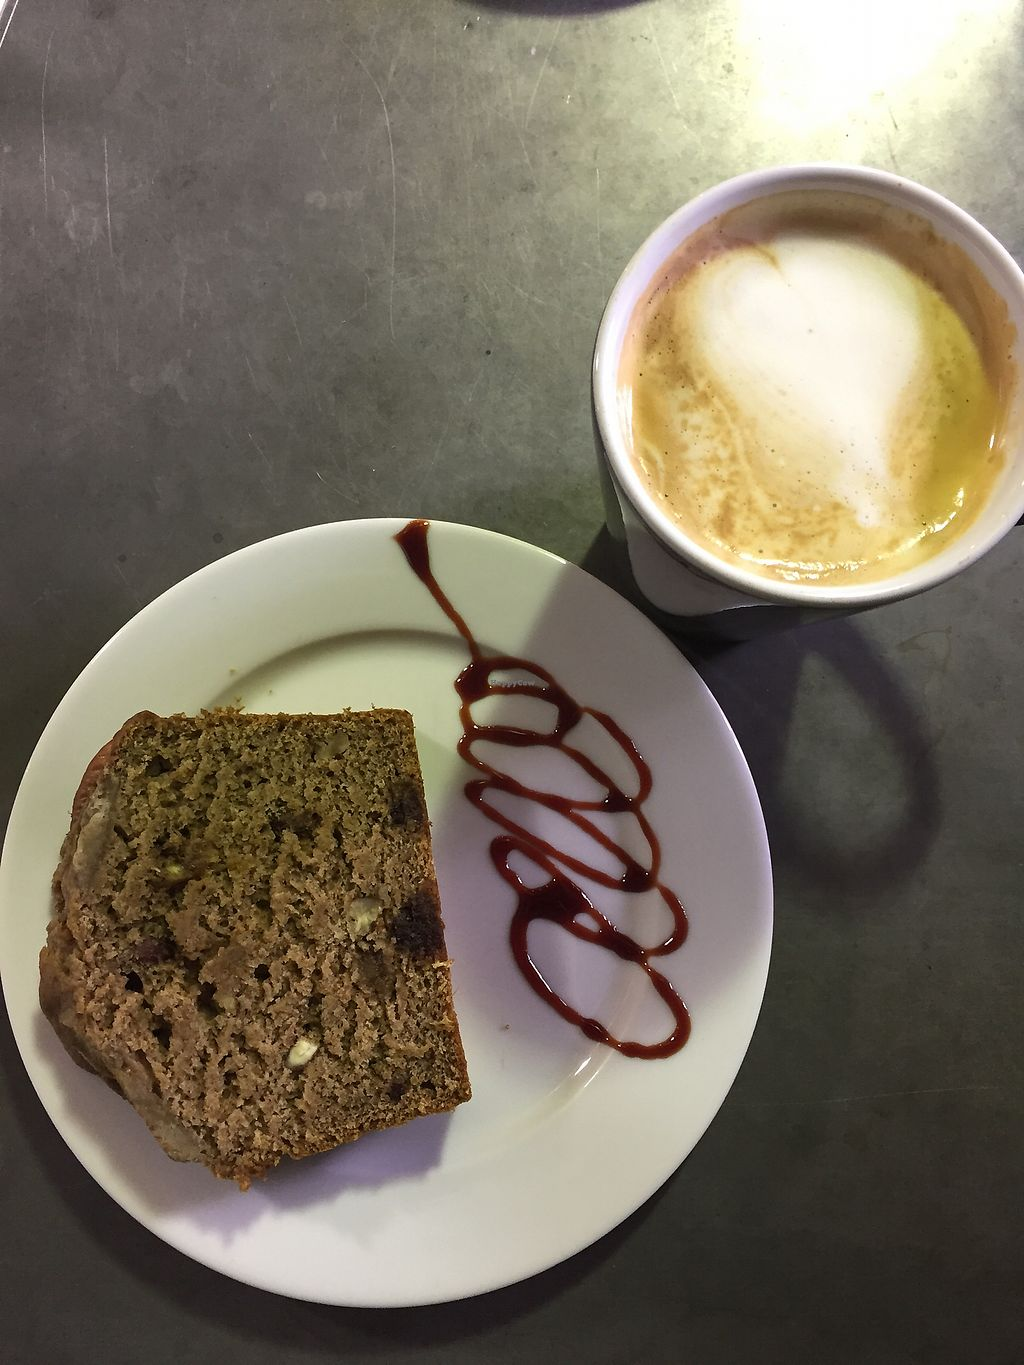 """Photo of West Six Garden Cafe  by <a href=""""/members/profile/chiarabeebe"""">chiarabeebe</a> <br/>Vegan (and sugar free) banana bread <br/> February 4, 2018  - <a href='/contact/abuse/image/107282/354747'>Report</a>"""